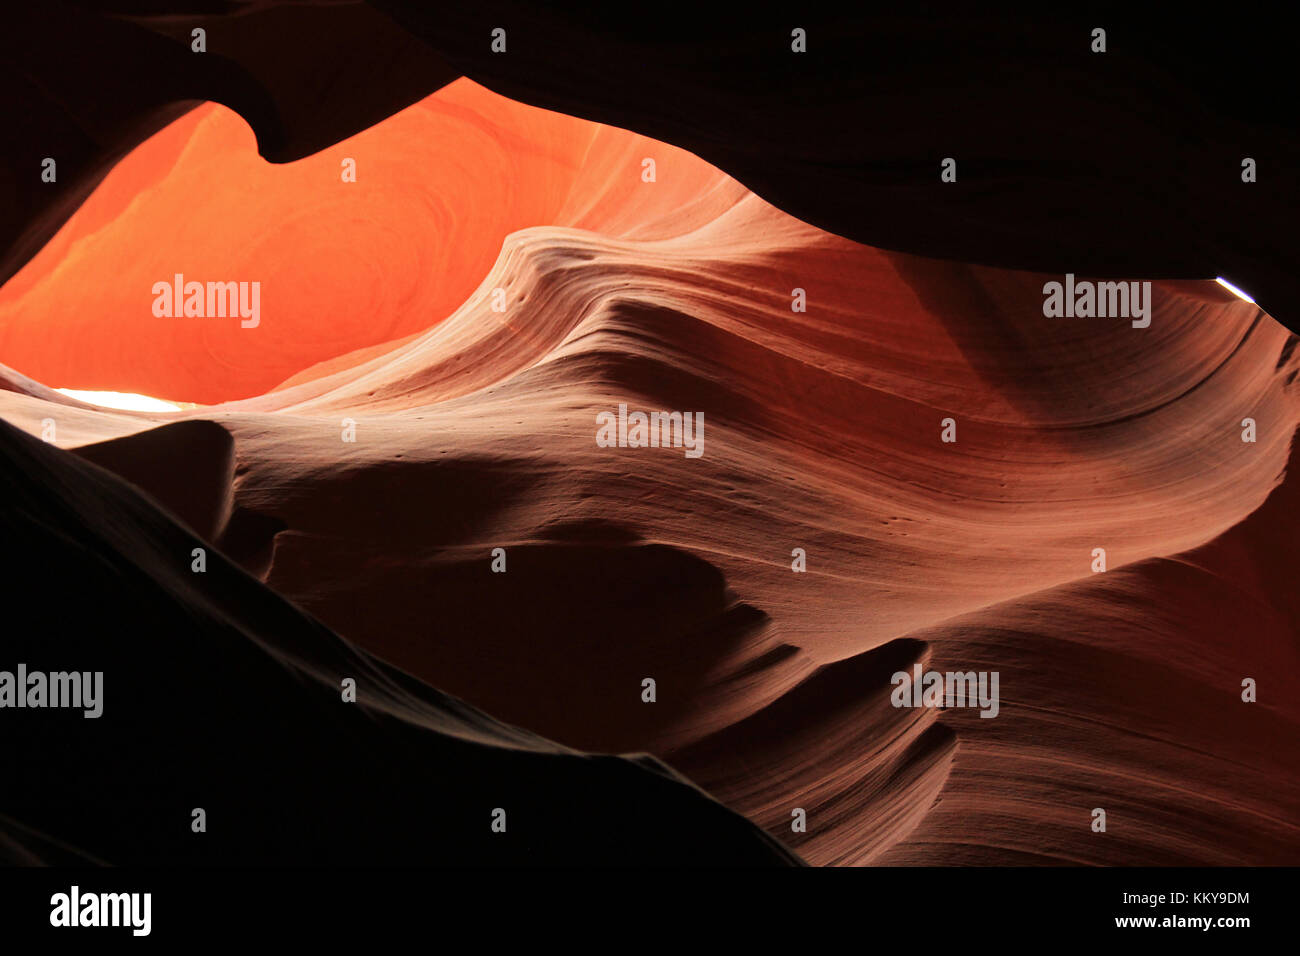 Upper Antelope Canyon, Page, Arizona, United States - Stock Image